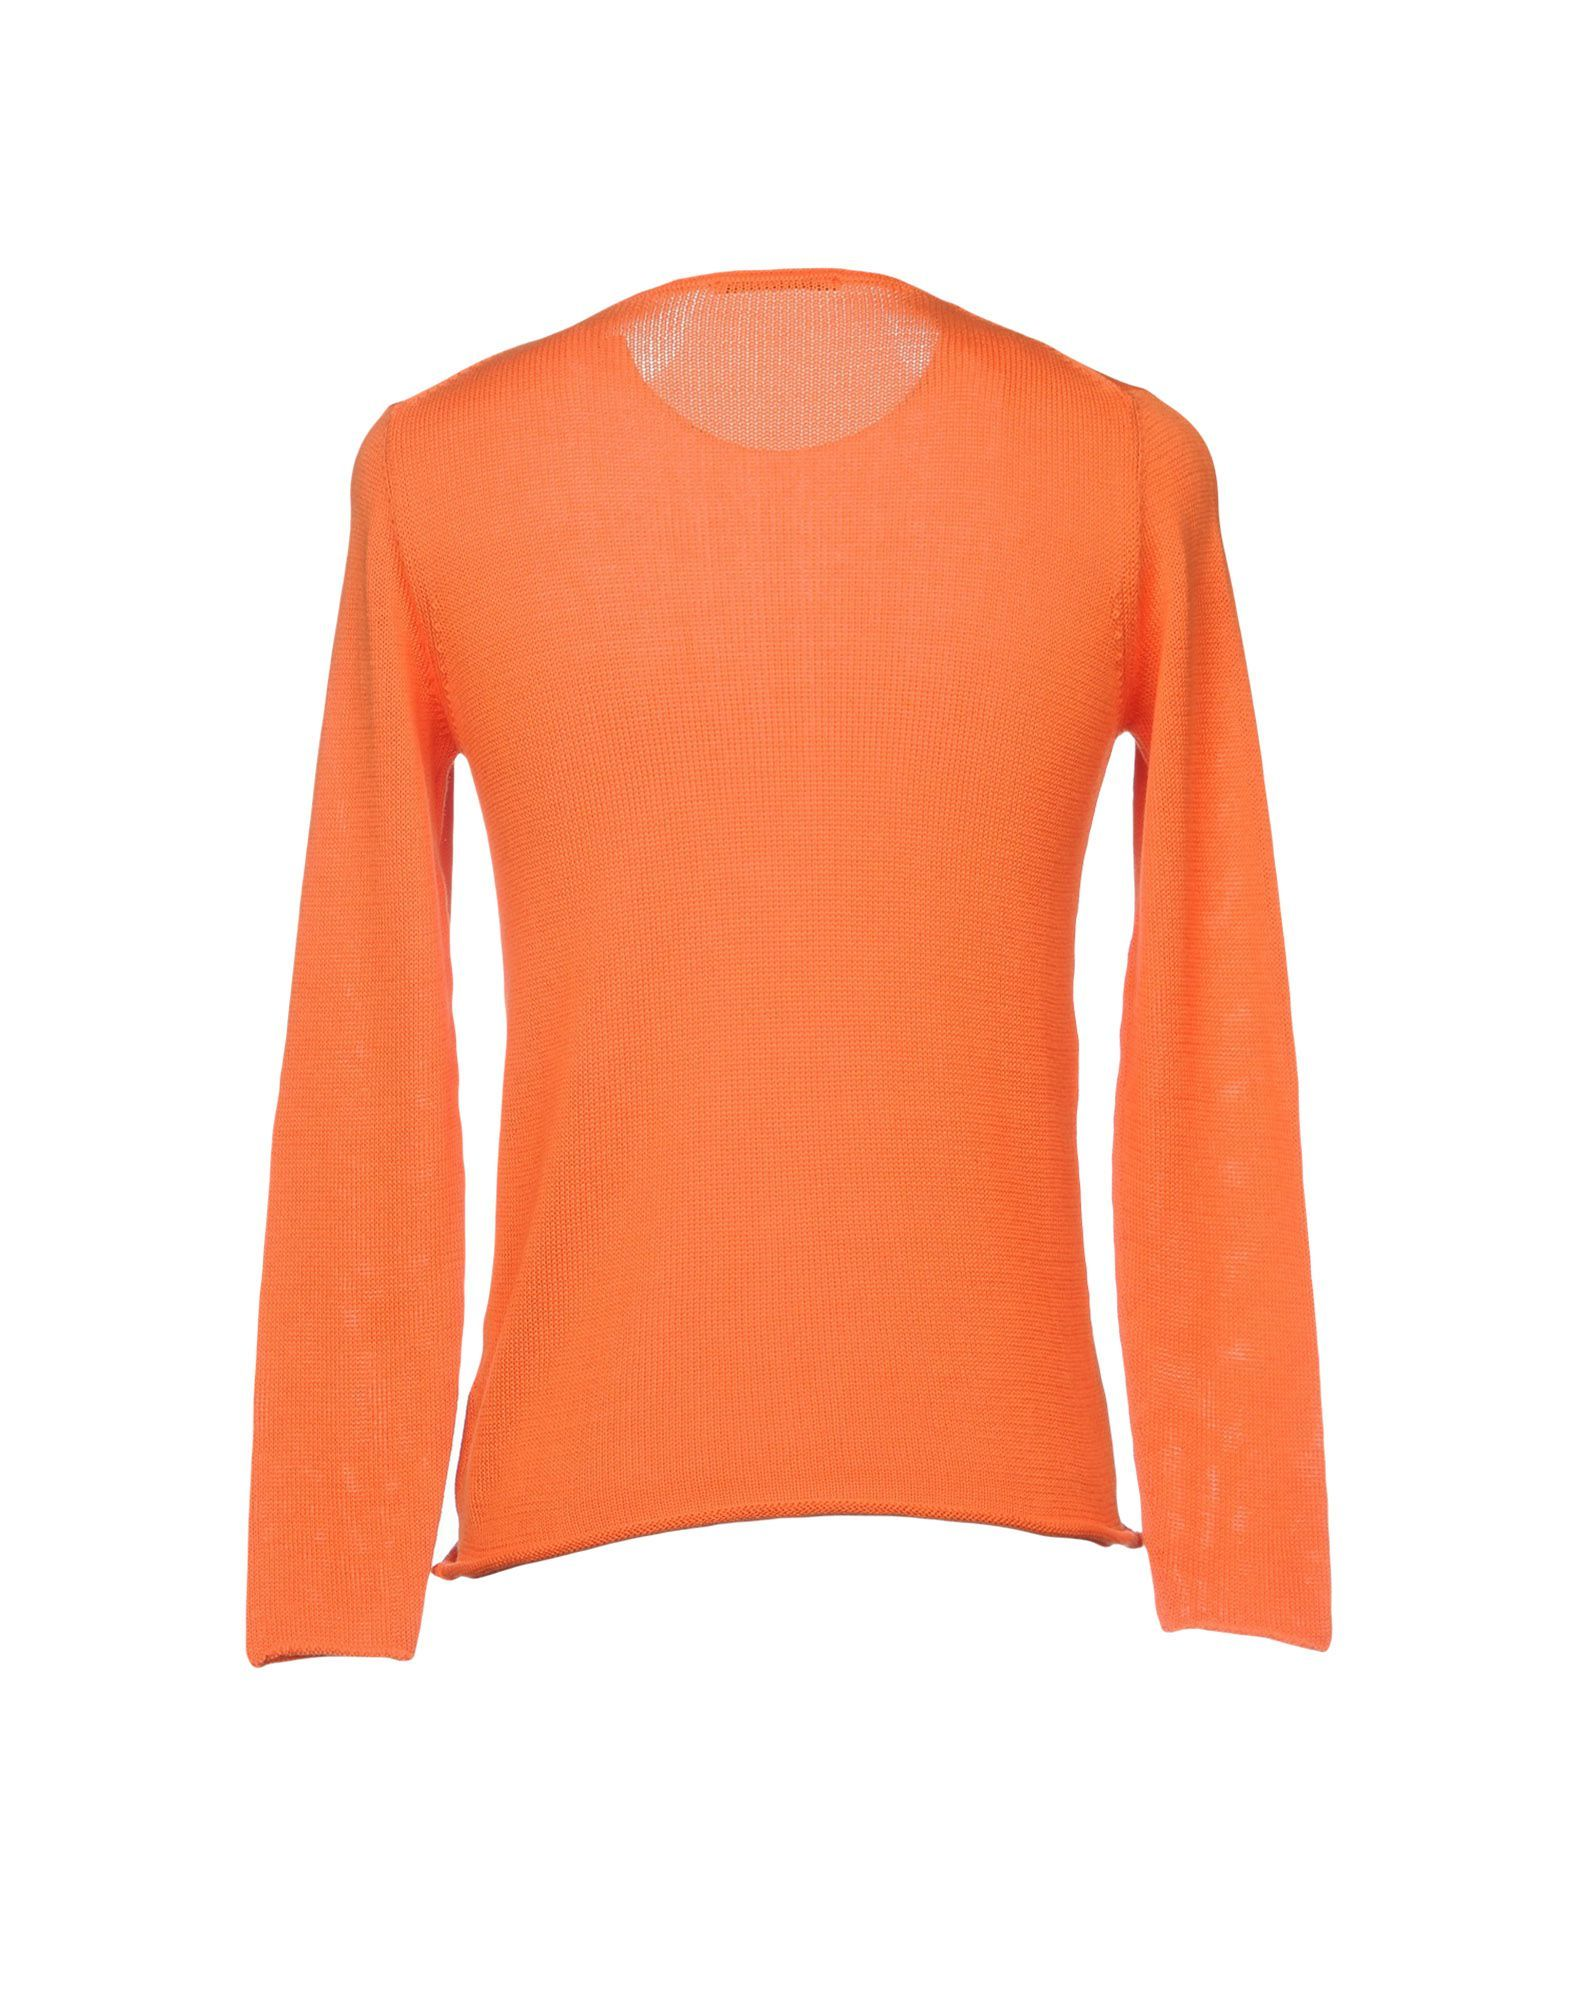 KNITWEAR Daniele Alessandrini Orange Man Cotton